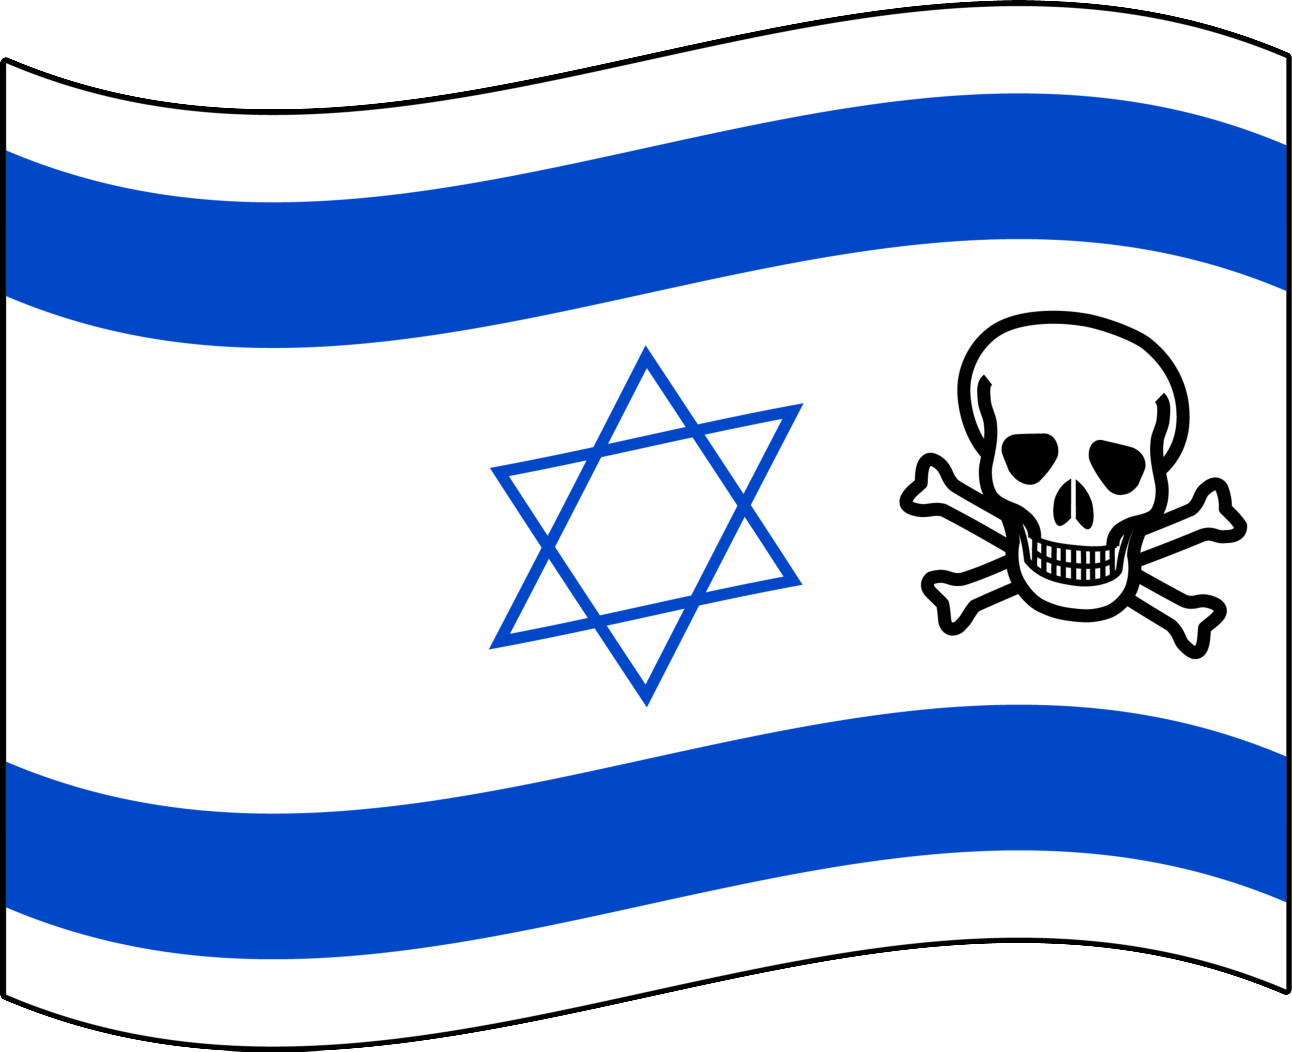 Israels zweites Gesicht …&lt;br /&gt;<br />Quelle 1: https://secure.wikimedia.org/wikipedia/commons/wiki/File:Flag_of_Israel_%28bordered%29.svg&lt;br /&gt;<br />Quelle 2: https://secure.wikimedia.org/wikipedia/commons/wiki/File:Skull_and_crossbones.svg